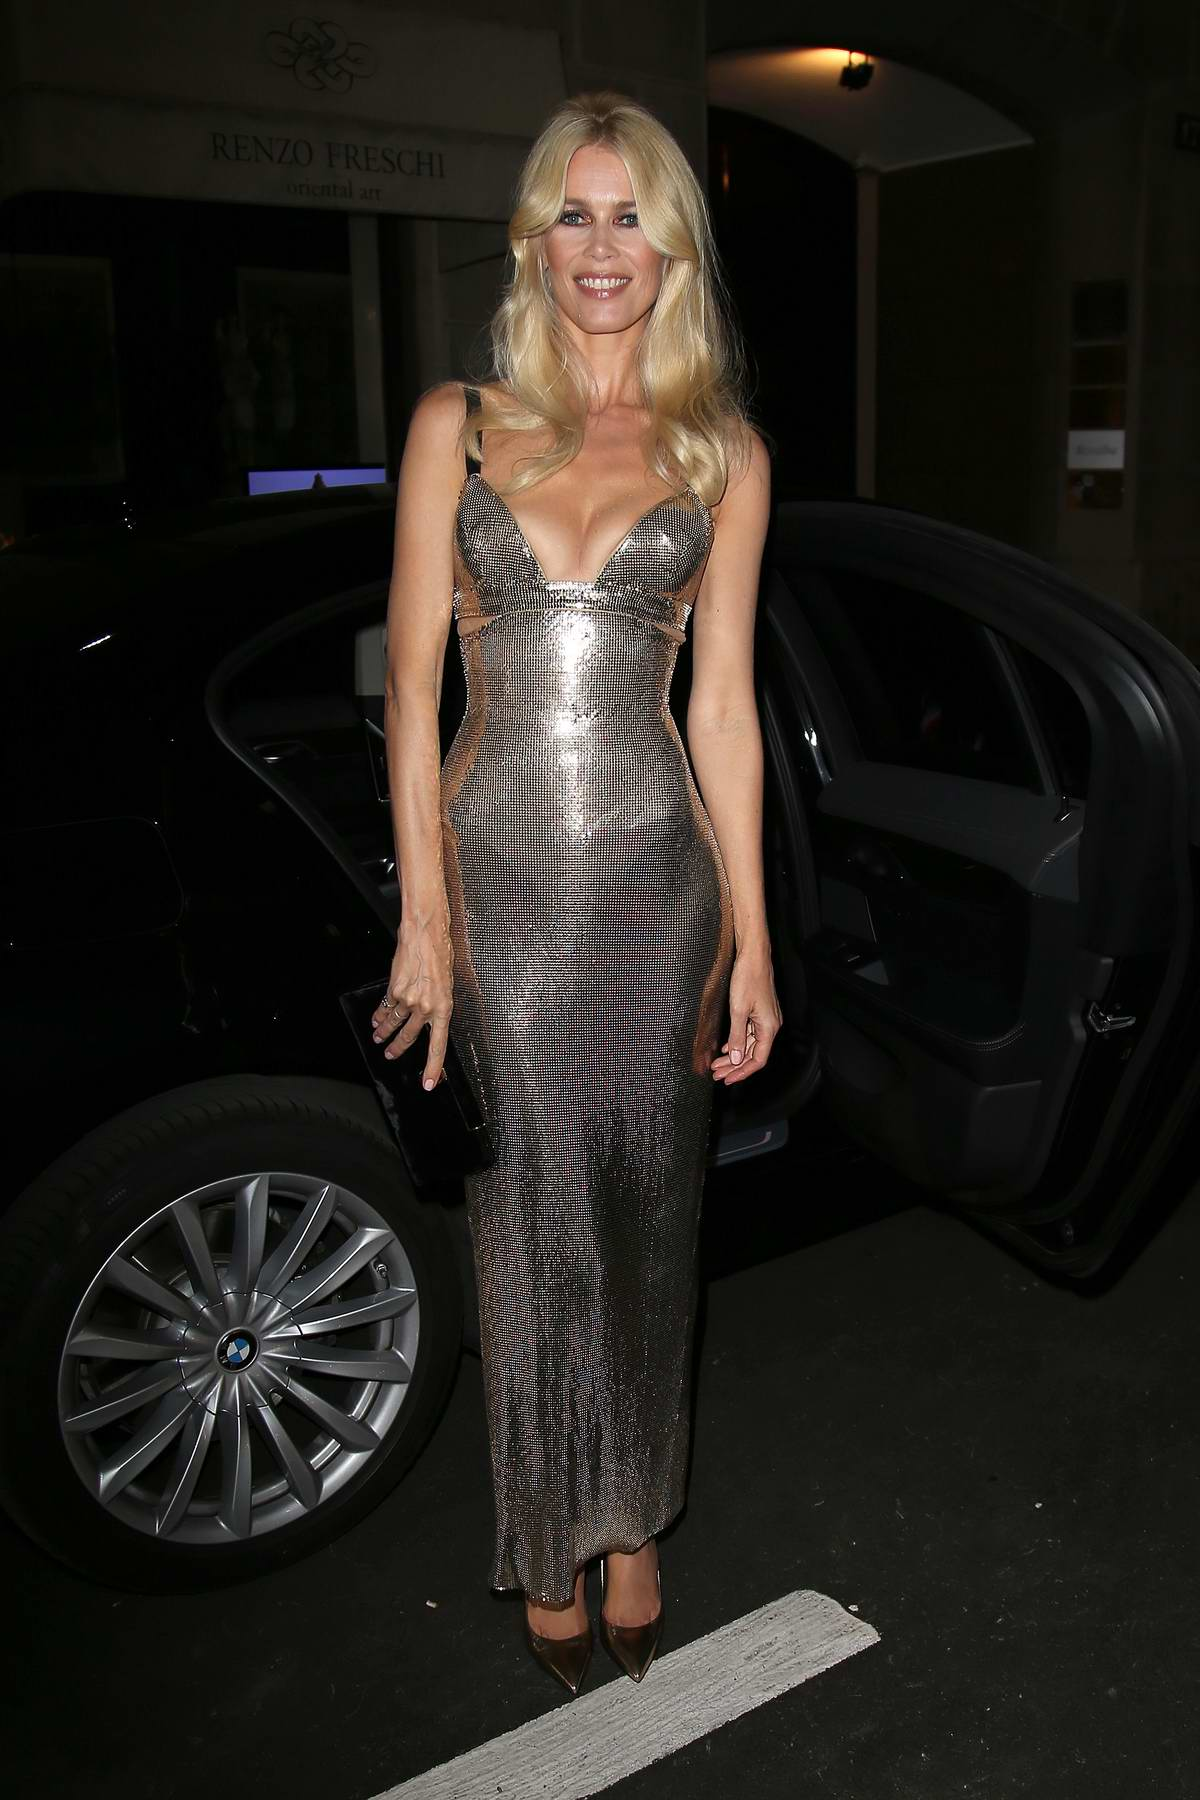 Claudia Schiffer arrives at Versace dinner party during Milan Fashion Week, Italy